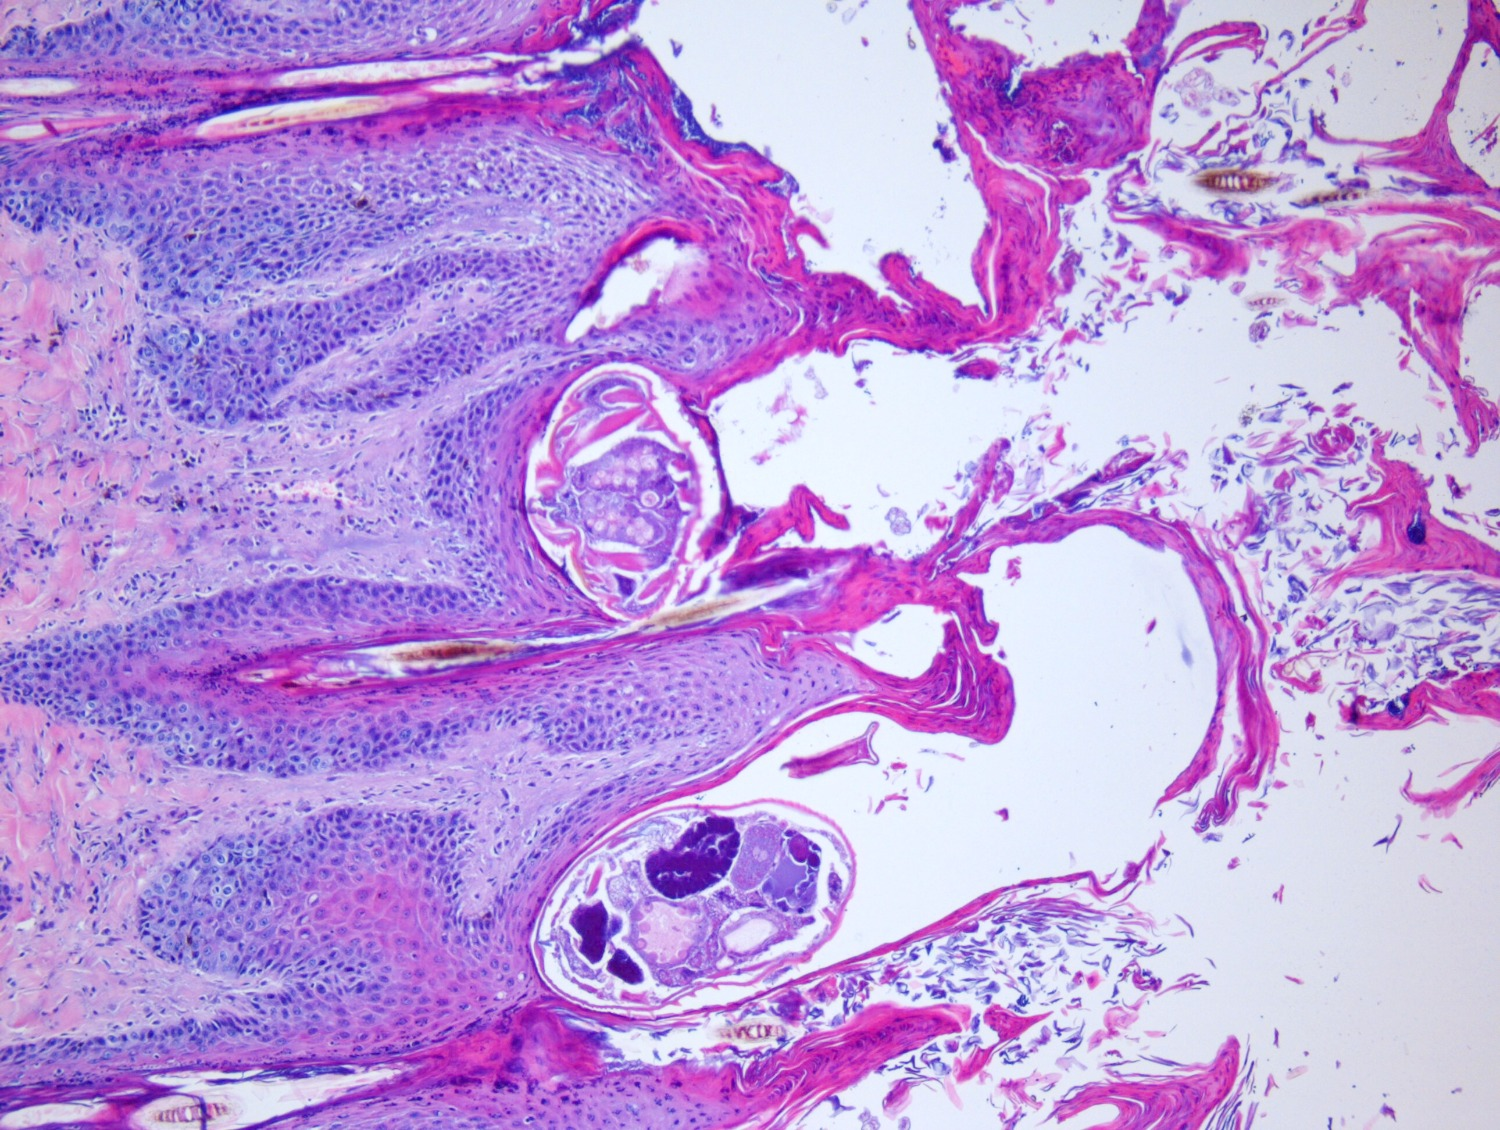 scabies 20x 3_edited